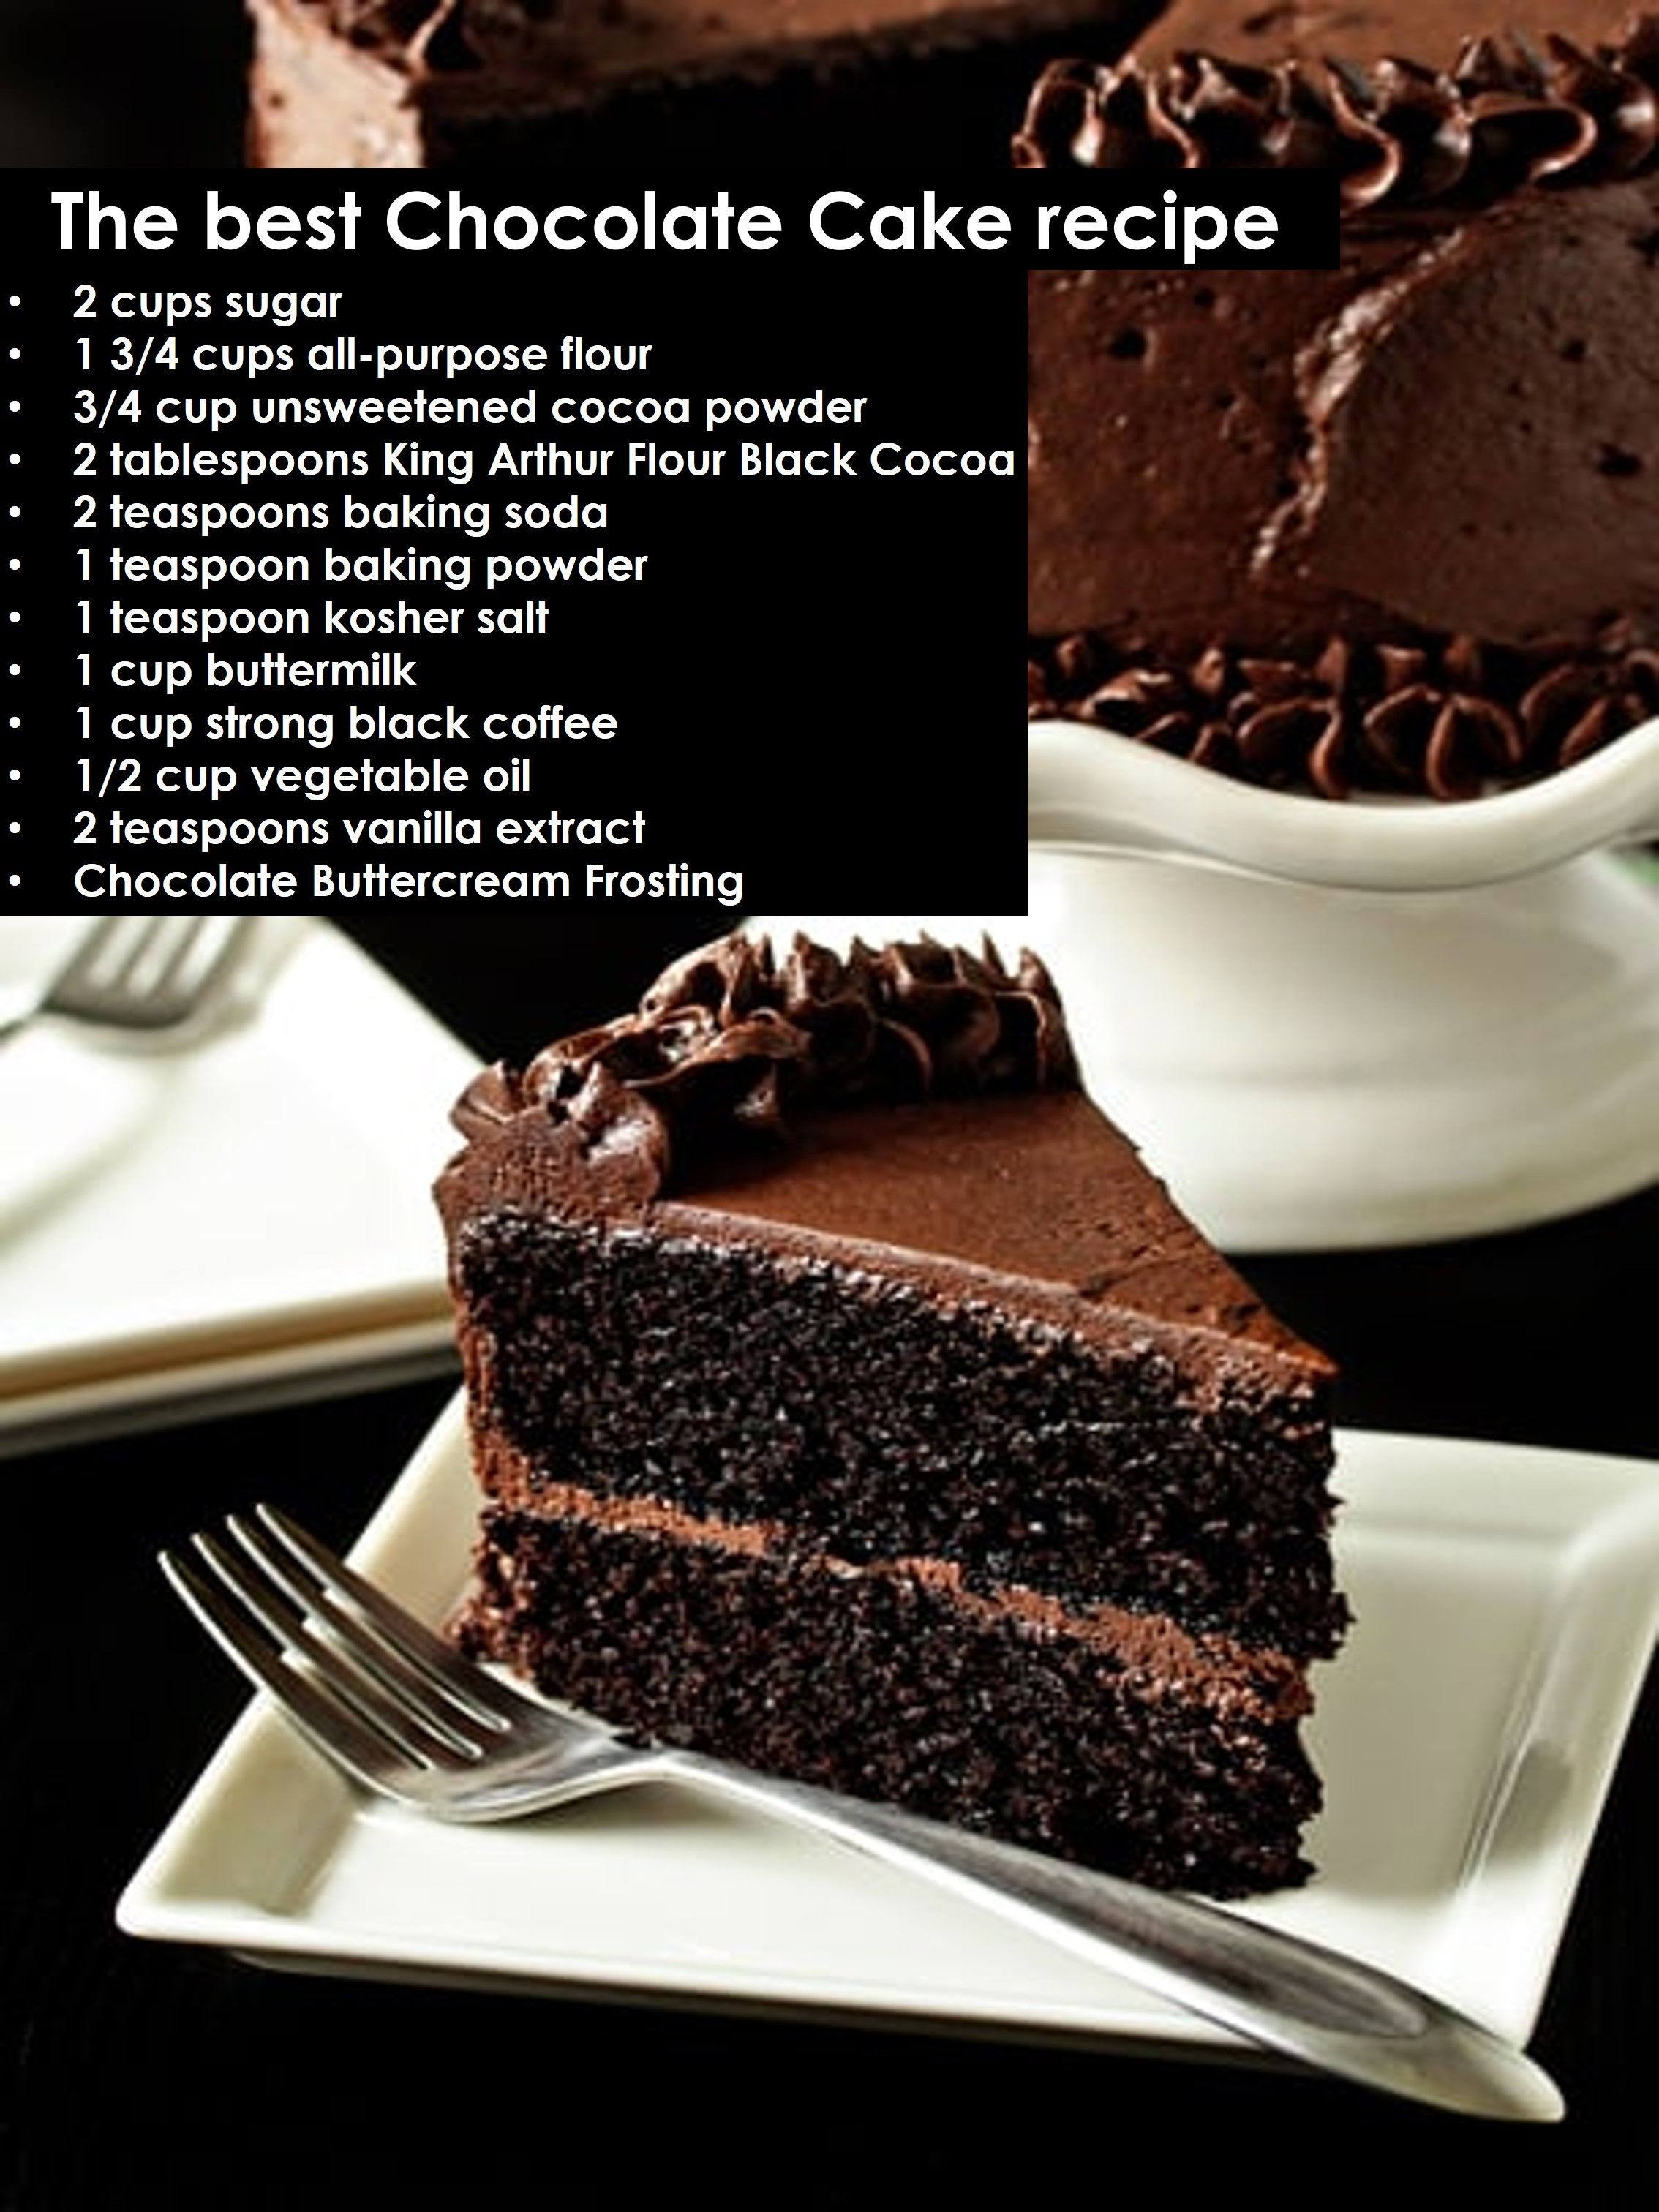 Do you want to know the full recipe? #chocolatecake